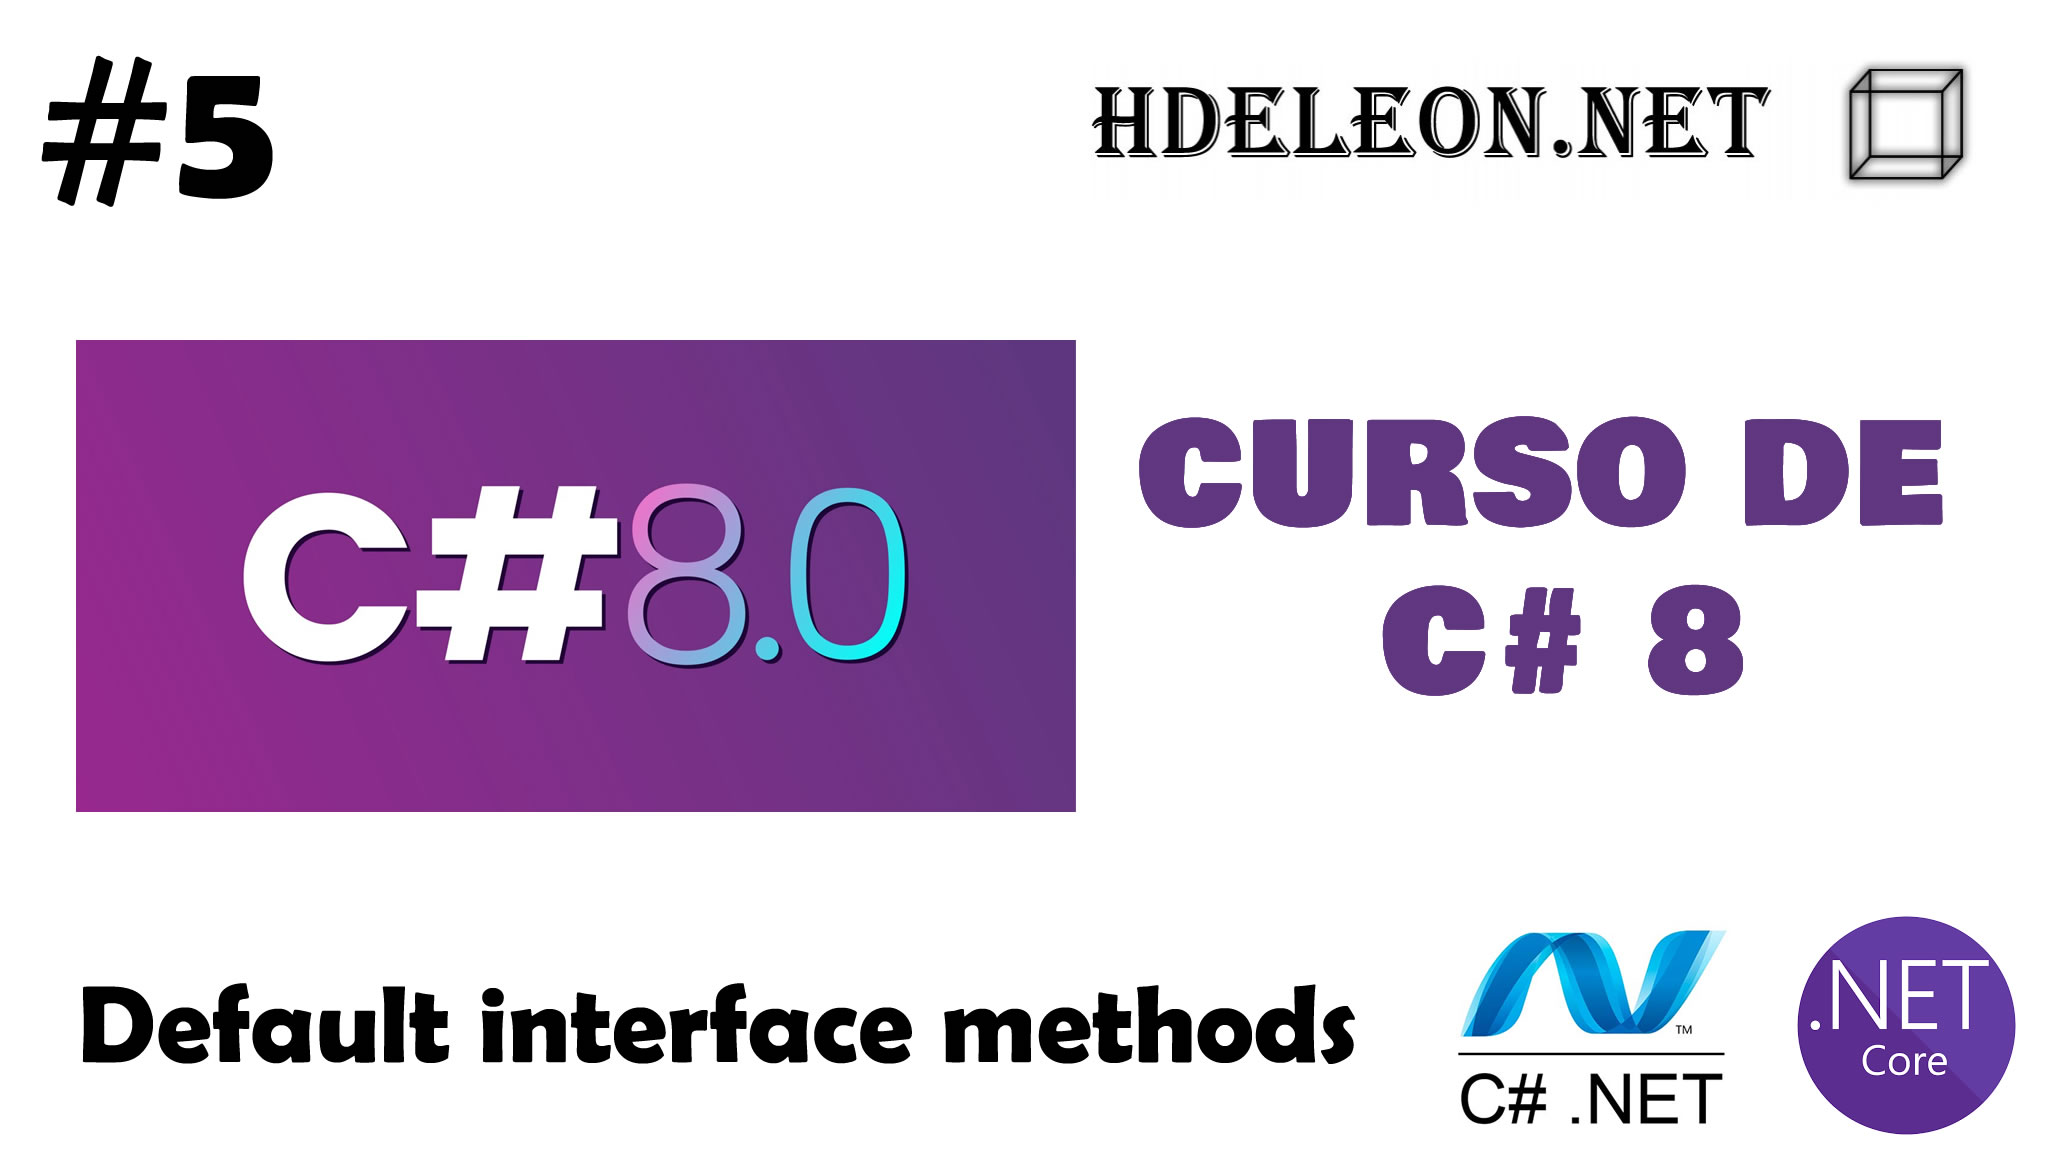 Curso gratuito de C# 8 .Net, Default interface methods, #5